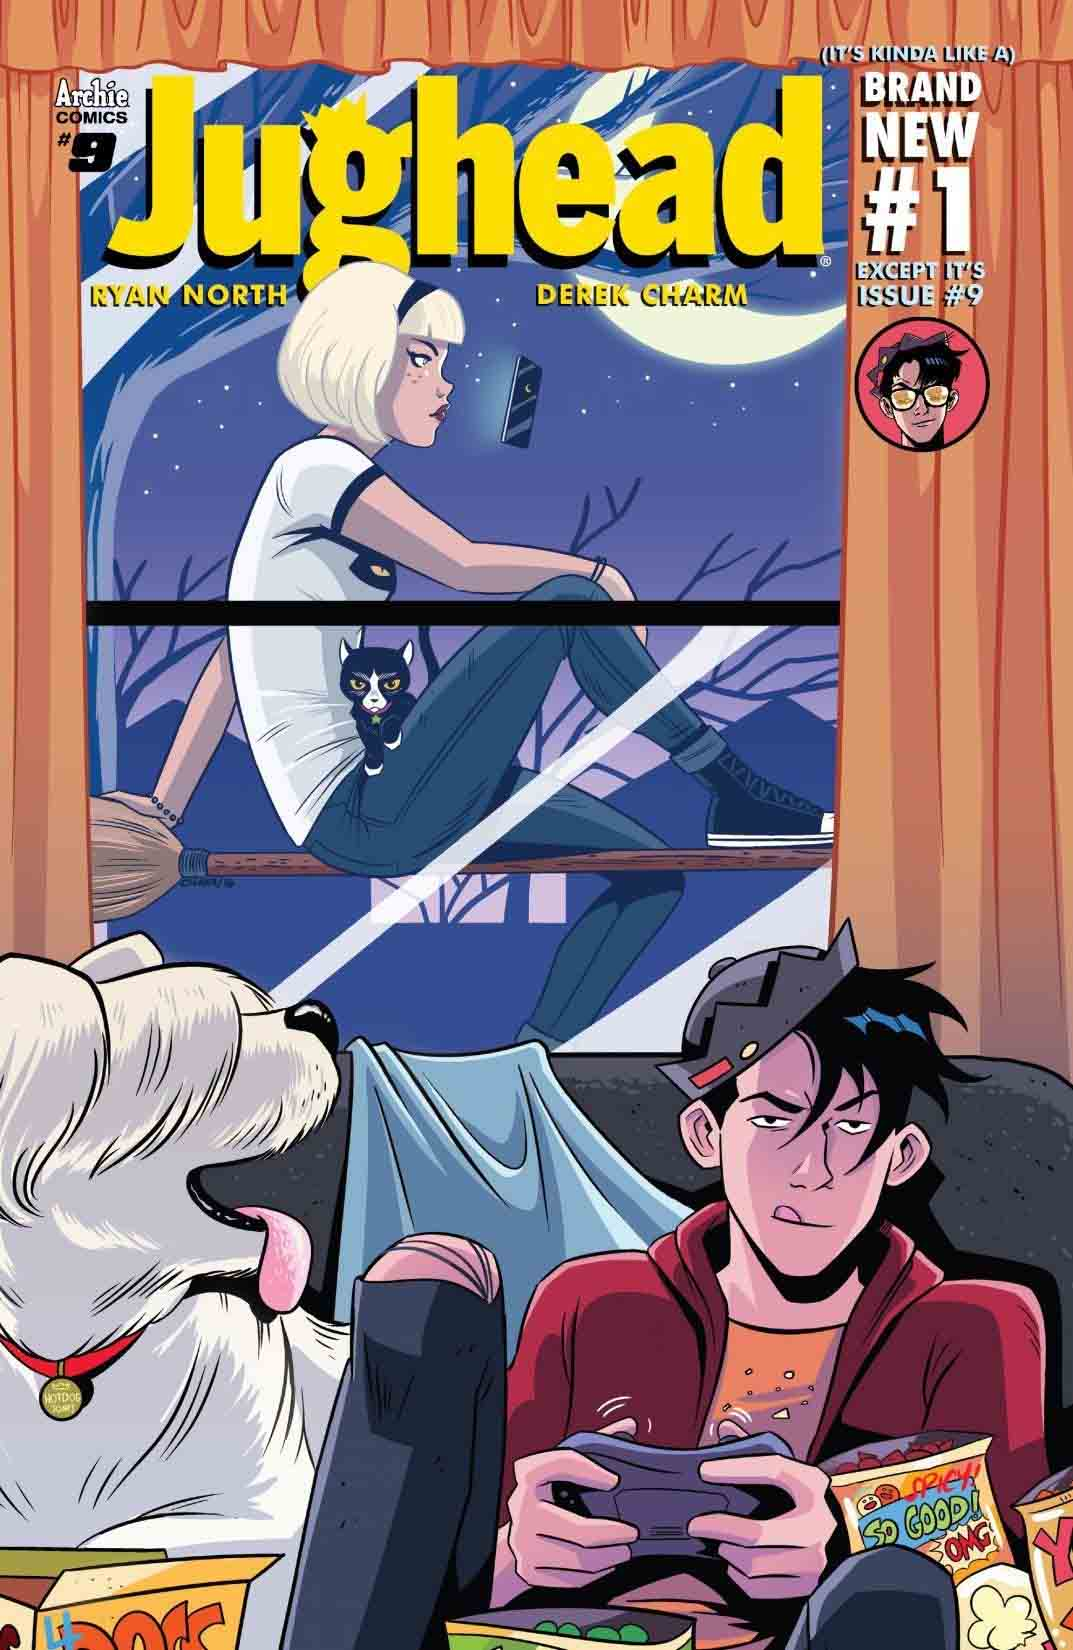 The 'Archie' comics over recent years have been praised for the asexual representation in the form of Jughead Jones. So when will 'Riverdale' do the same?